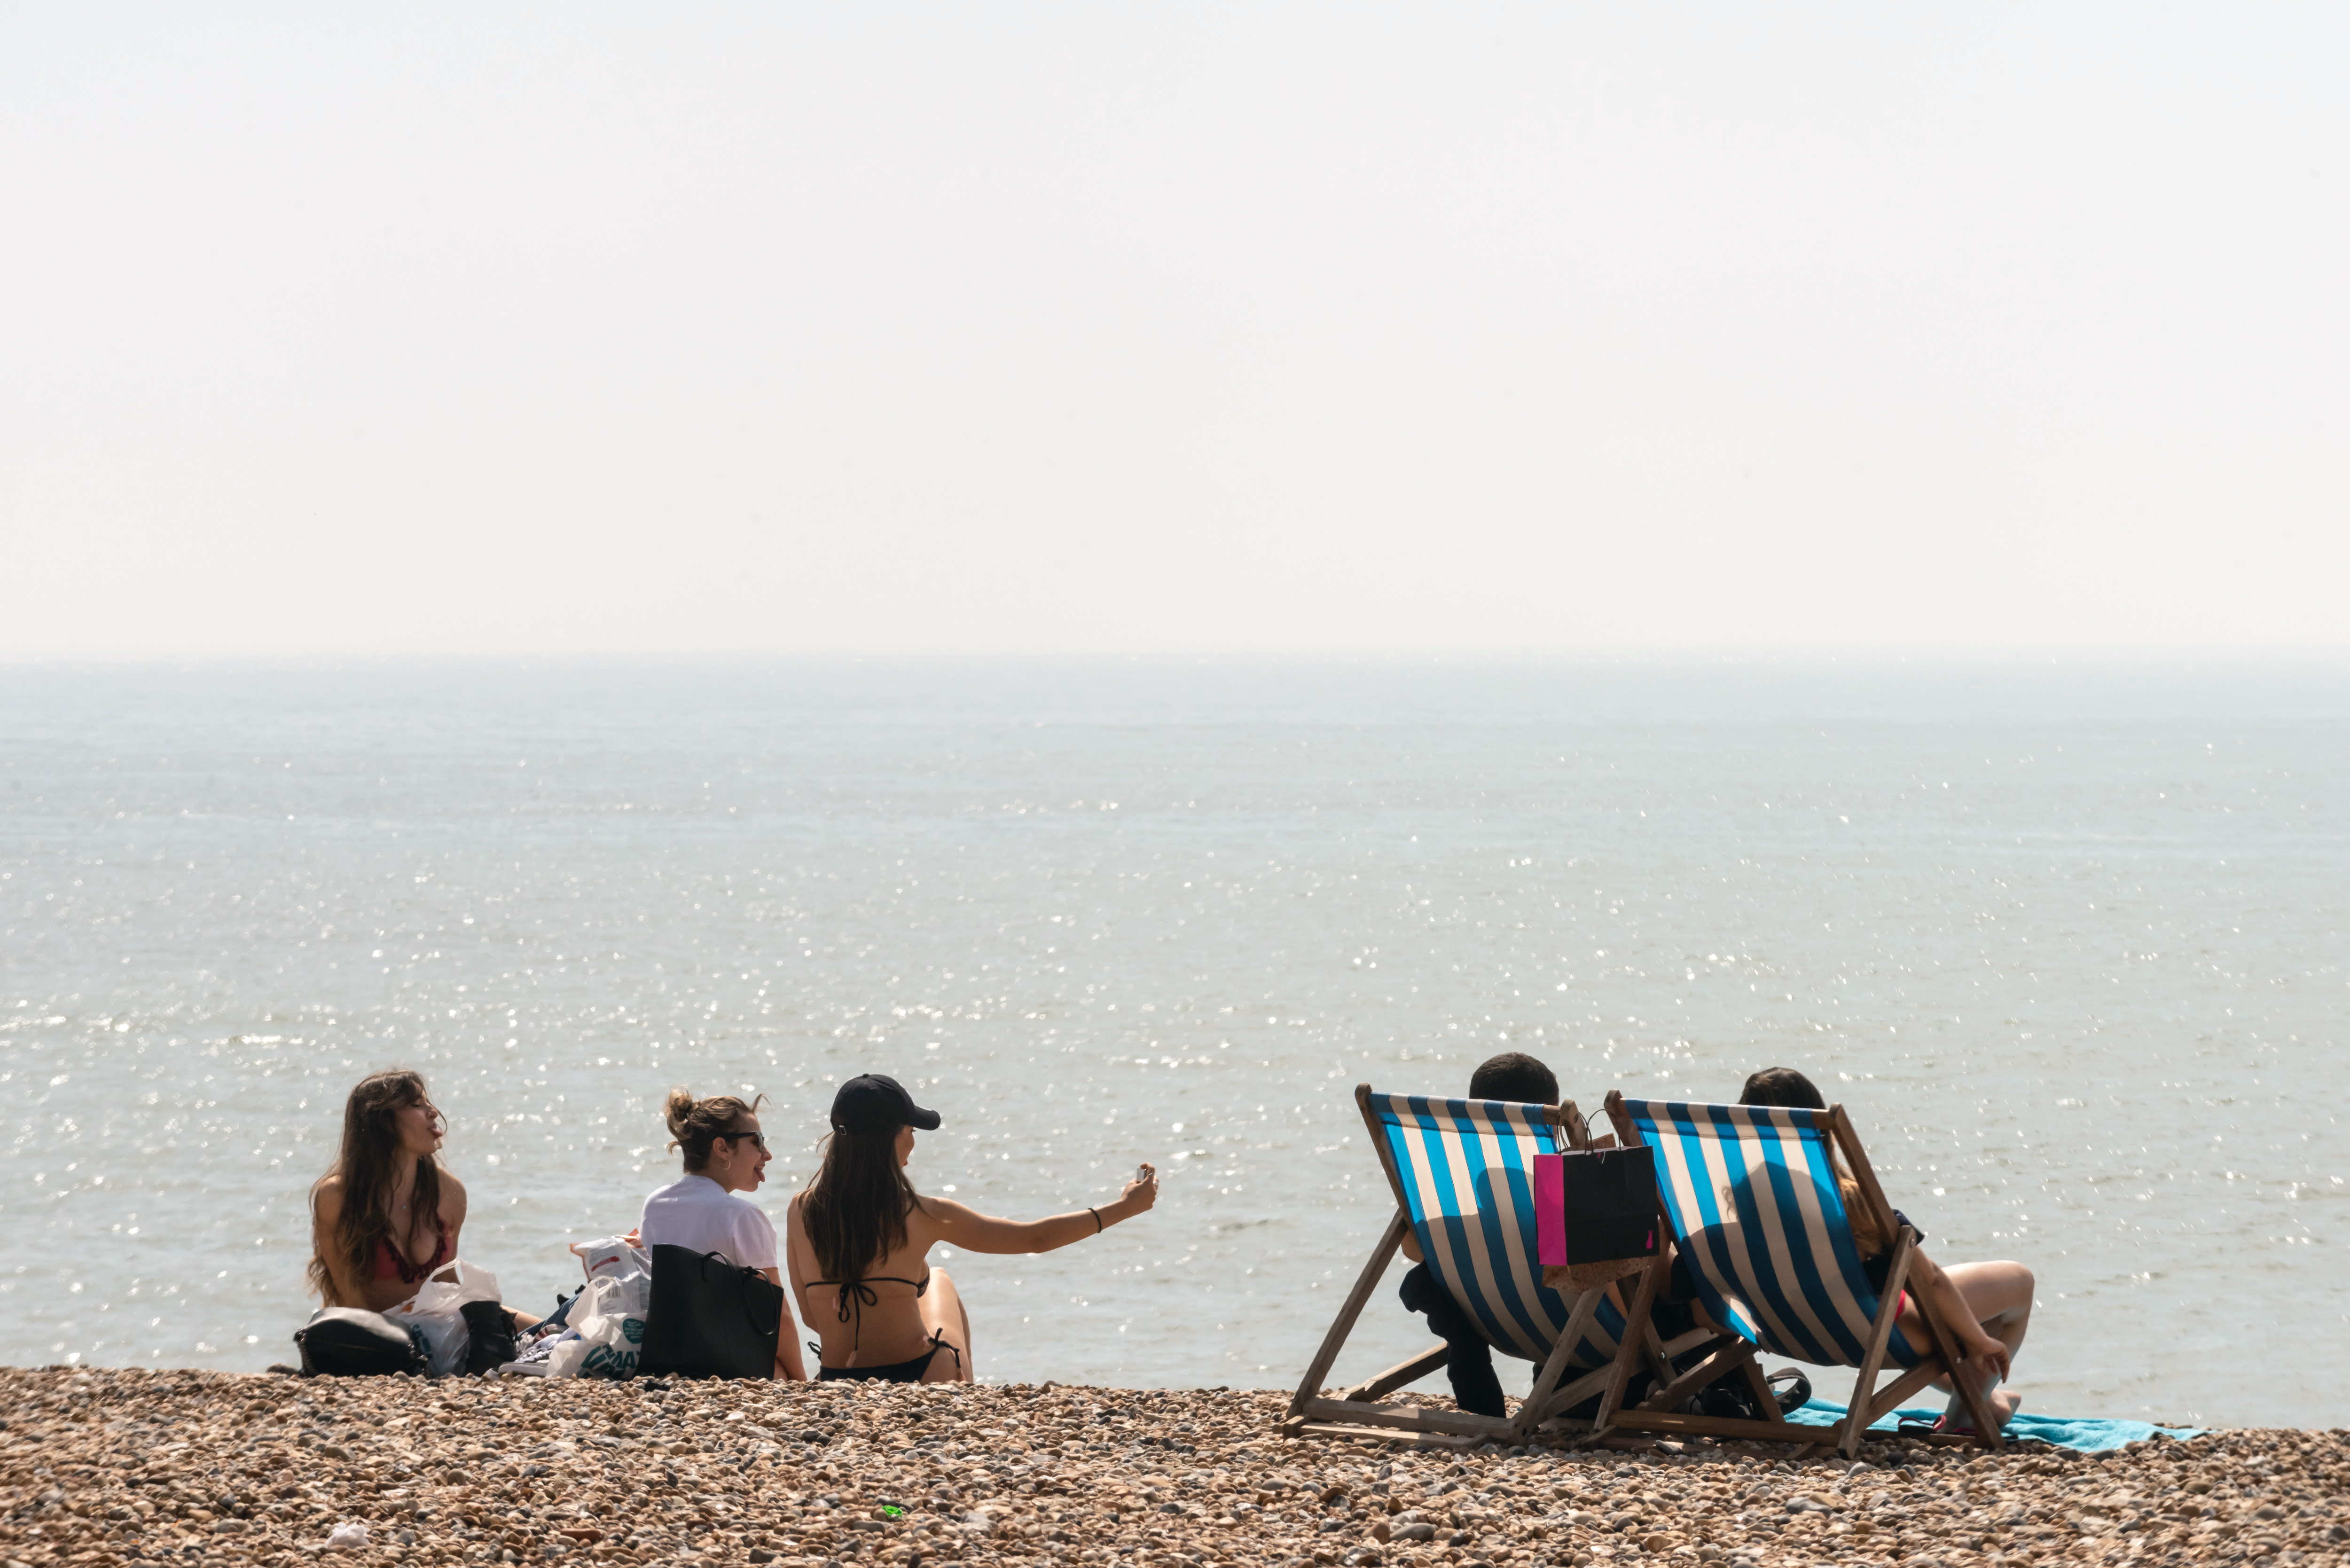 BRIGHTON, ENGLAND - APRIL 22: People enjoy the beach during the warm weather on Bank Holiday Easter Monday on April 22, 2019 in Brighton, England.  This Easter weekend has broken previous hot weather records with the warm weather expected to continue into next week. (Photo by Andrew Hasson/Getty Images)